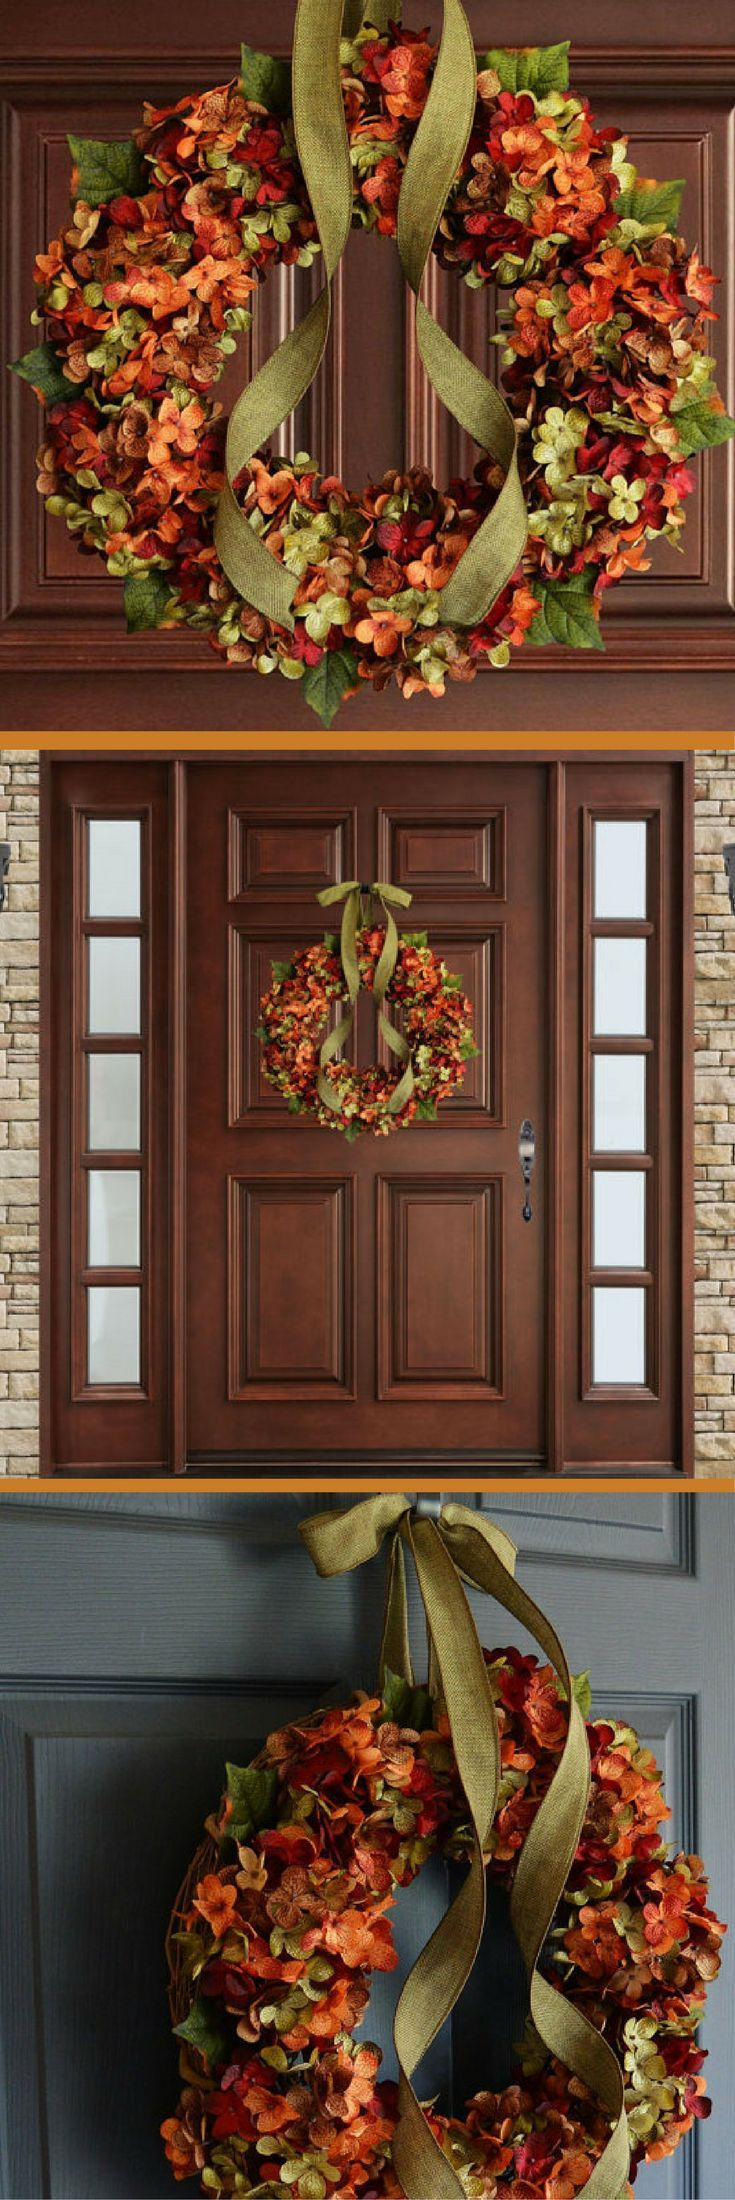 157 best ale fav images on Pinterest Christmas door wreaths - Front Door Halloween Decoration Ideas